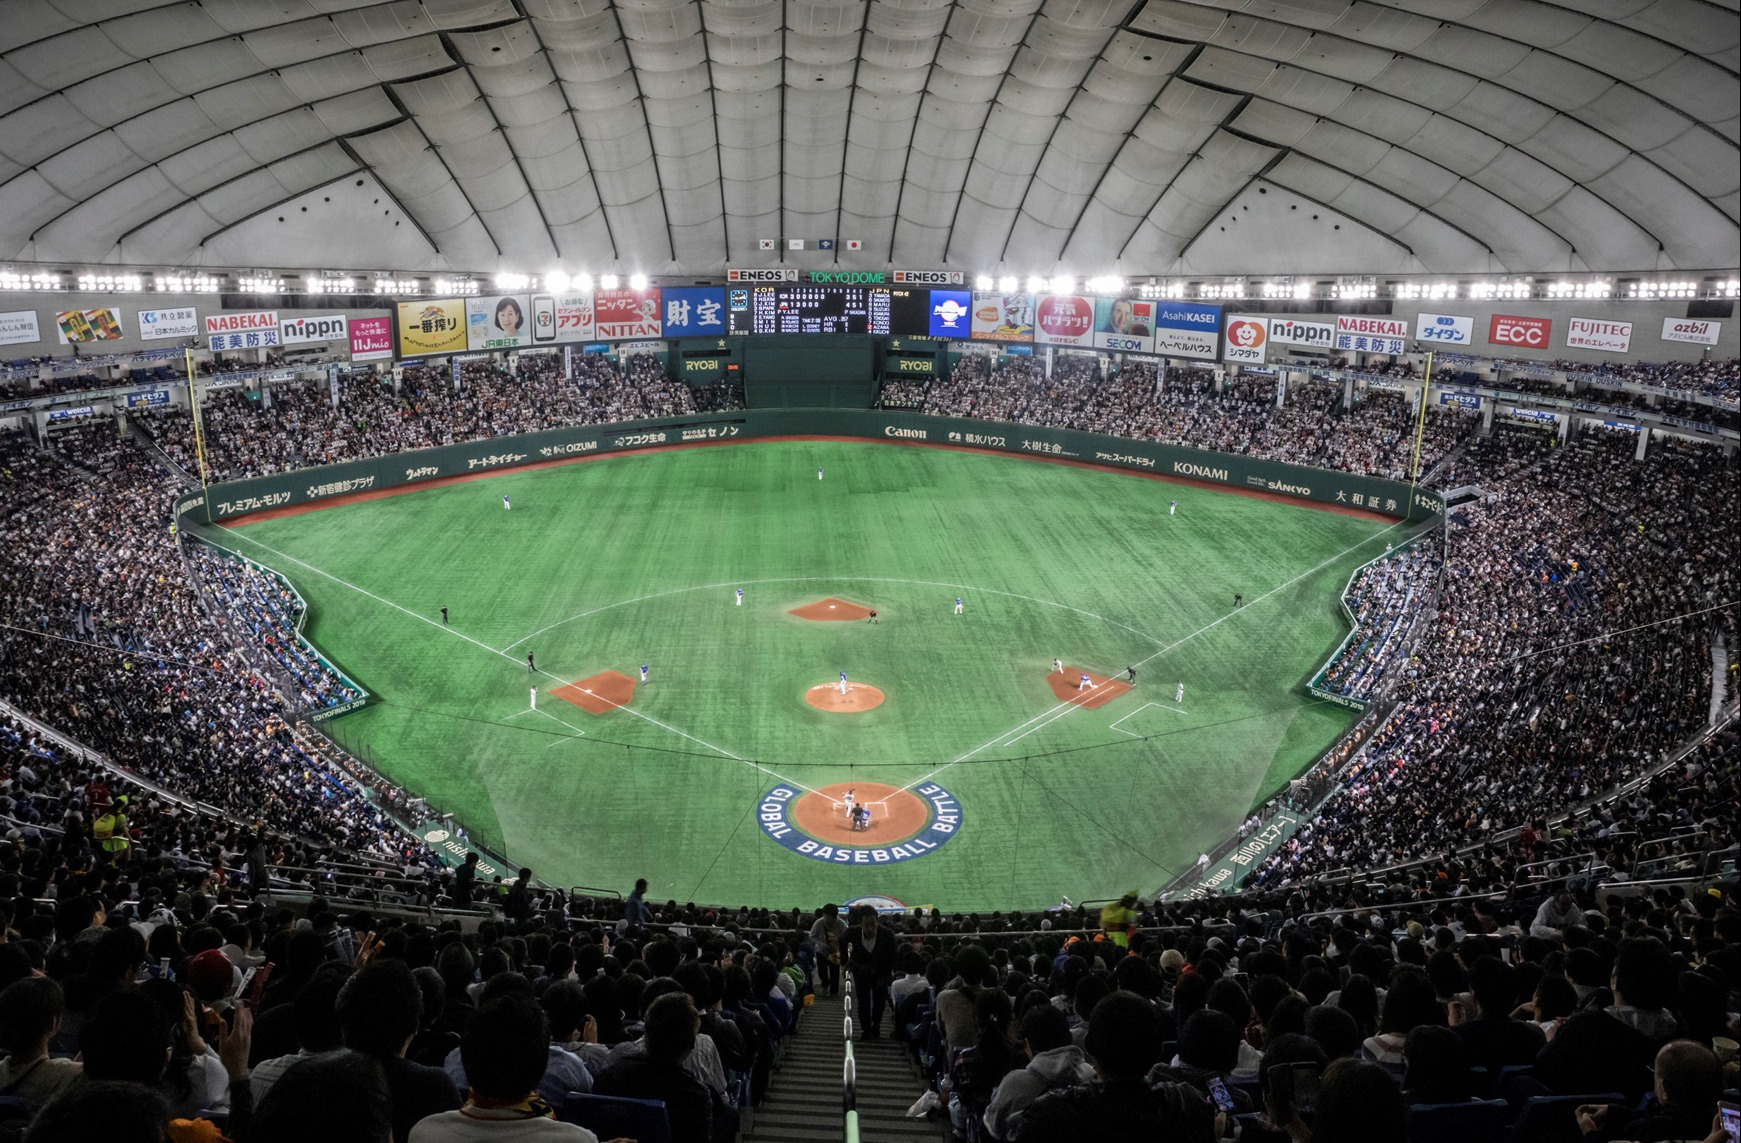 44,960 fans crowded the Tokyo Dome